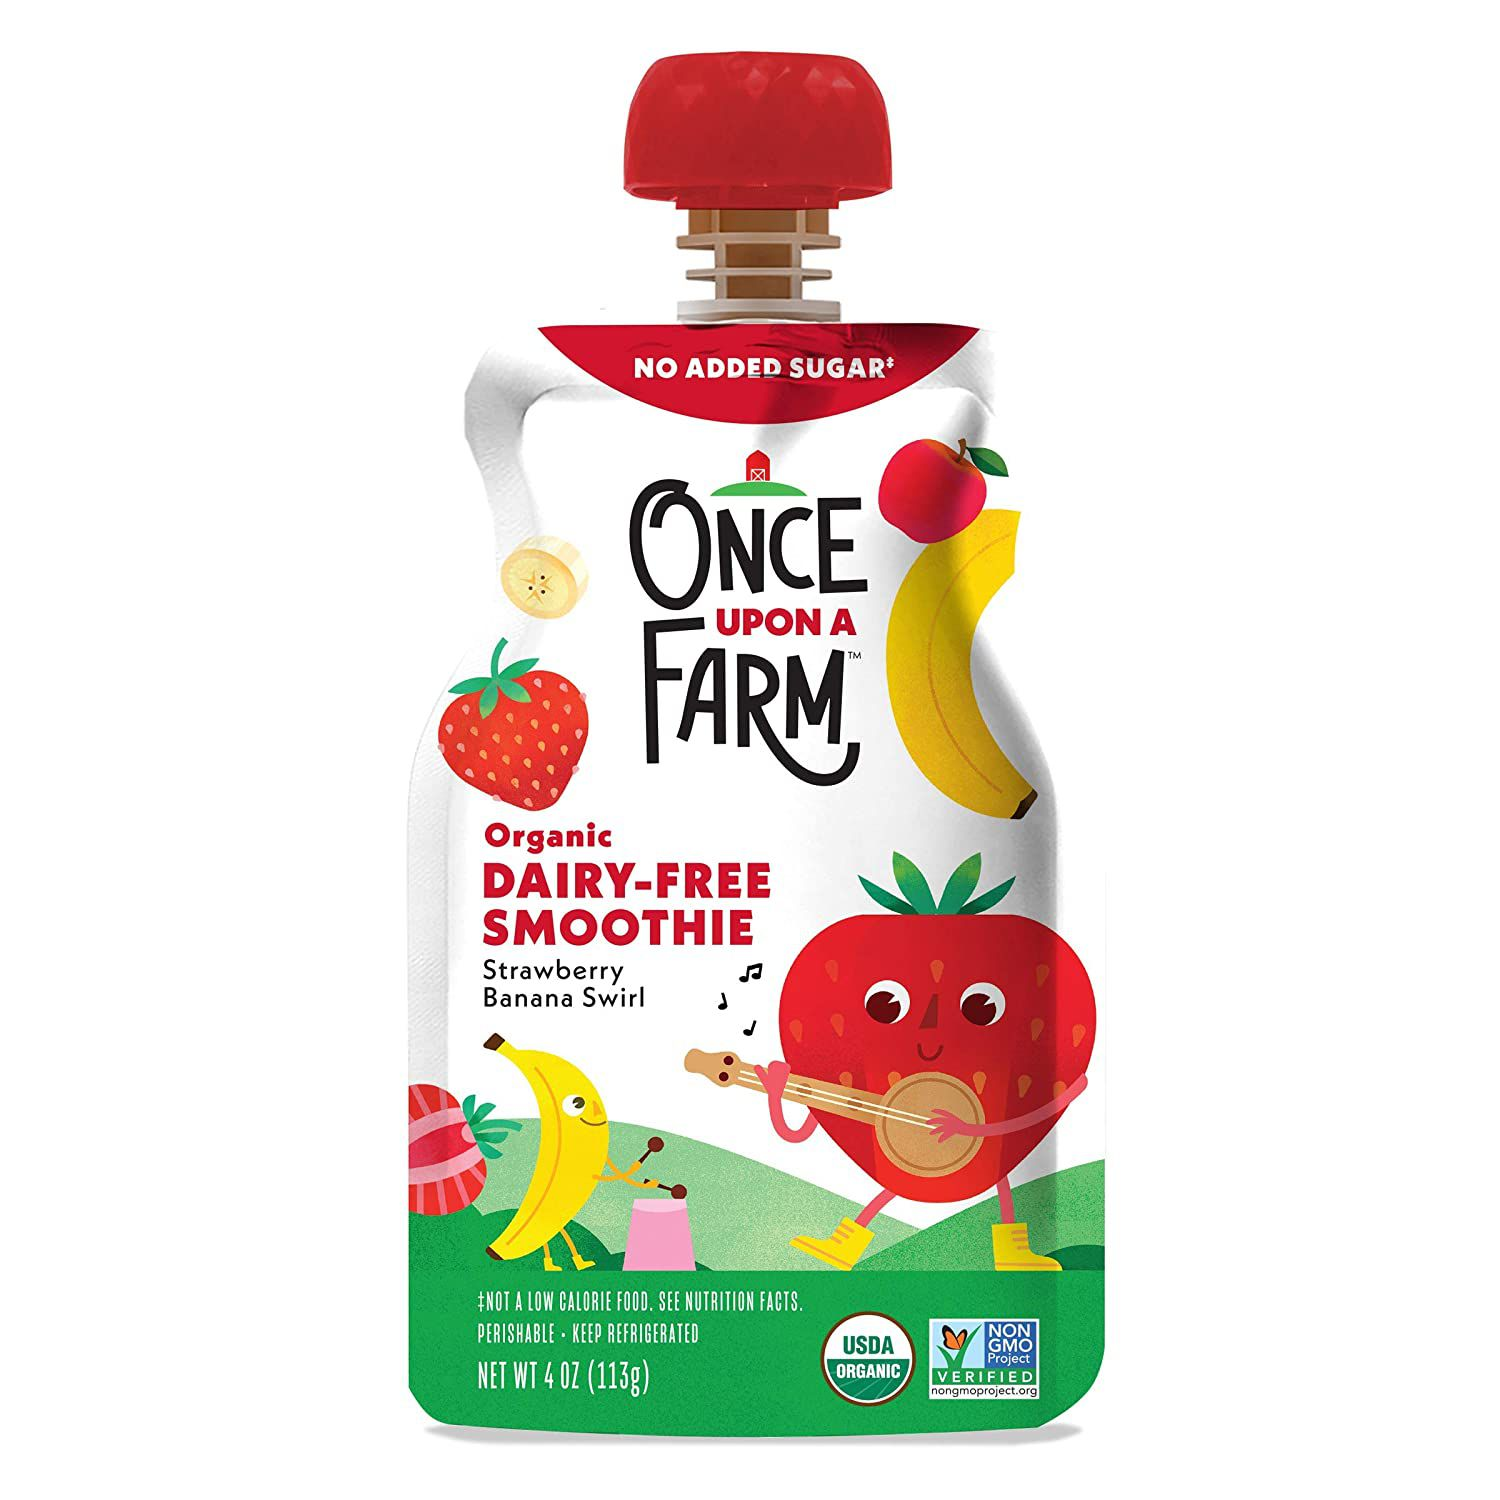 Once upon a farm smoothie